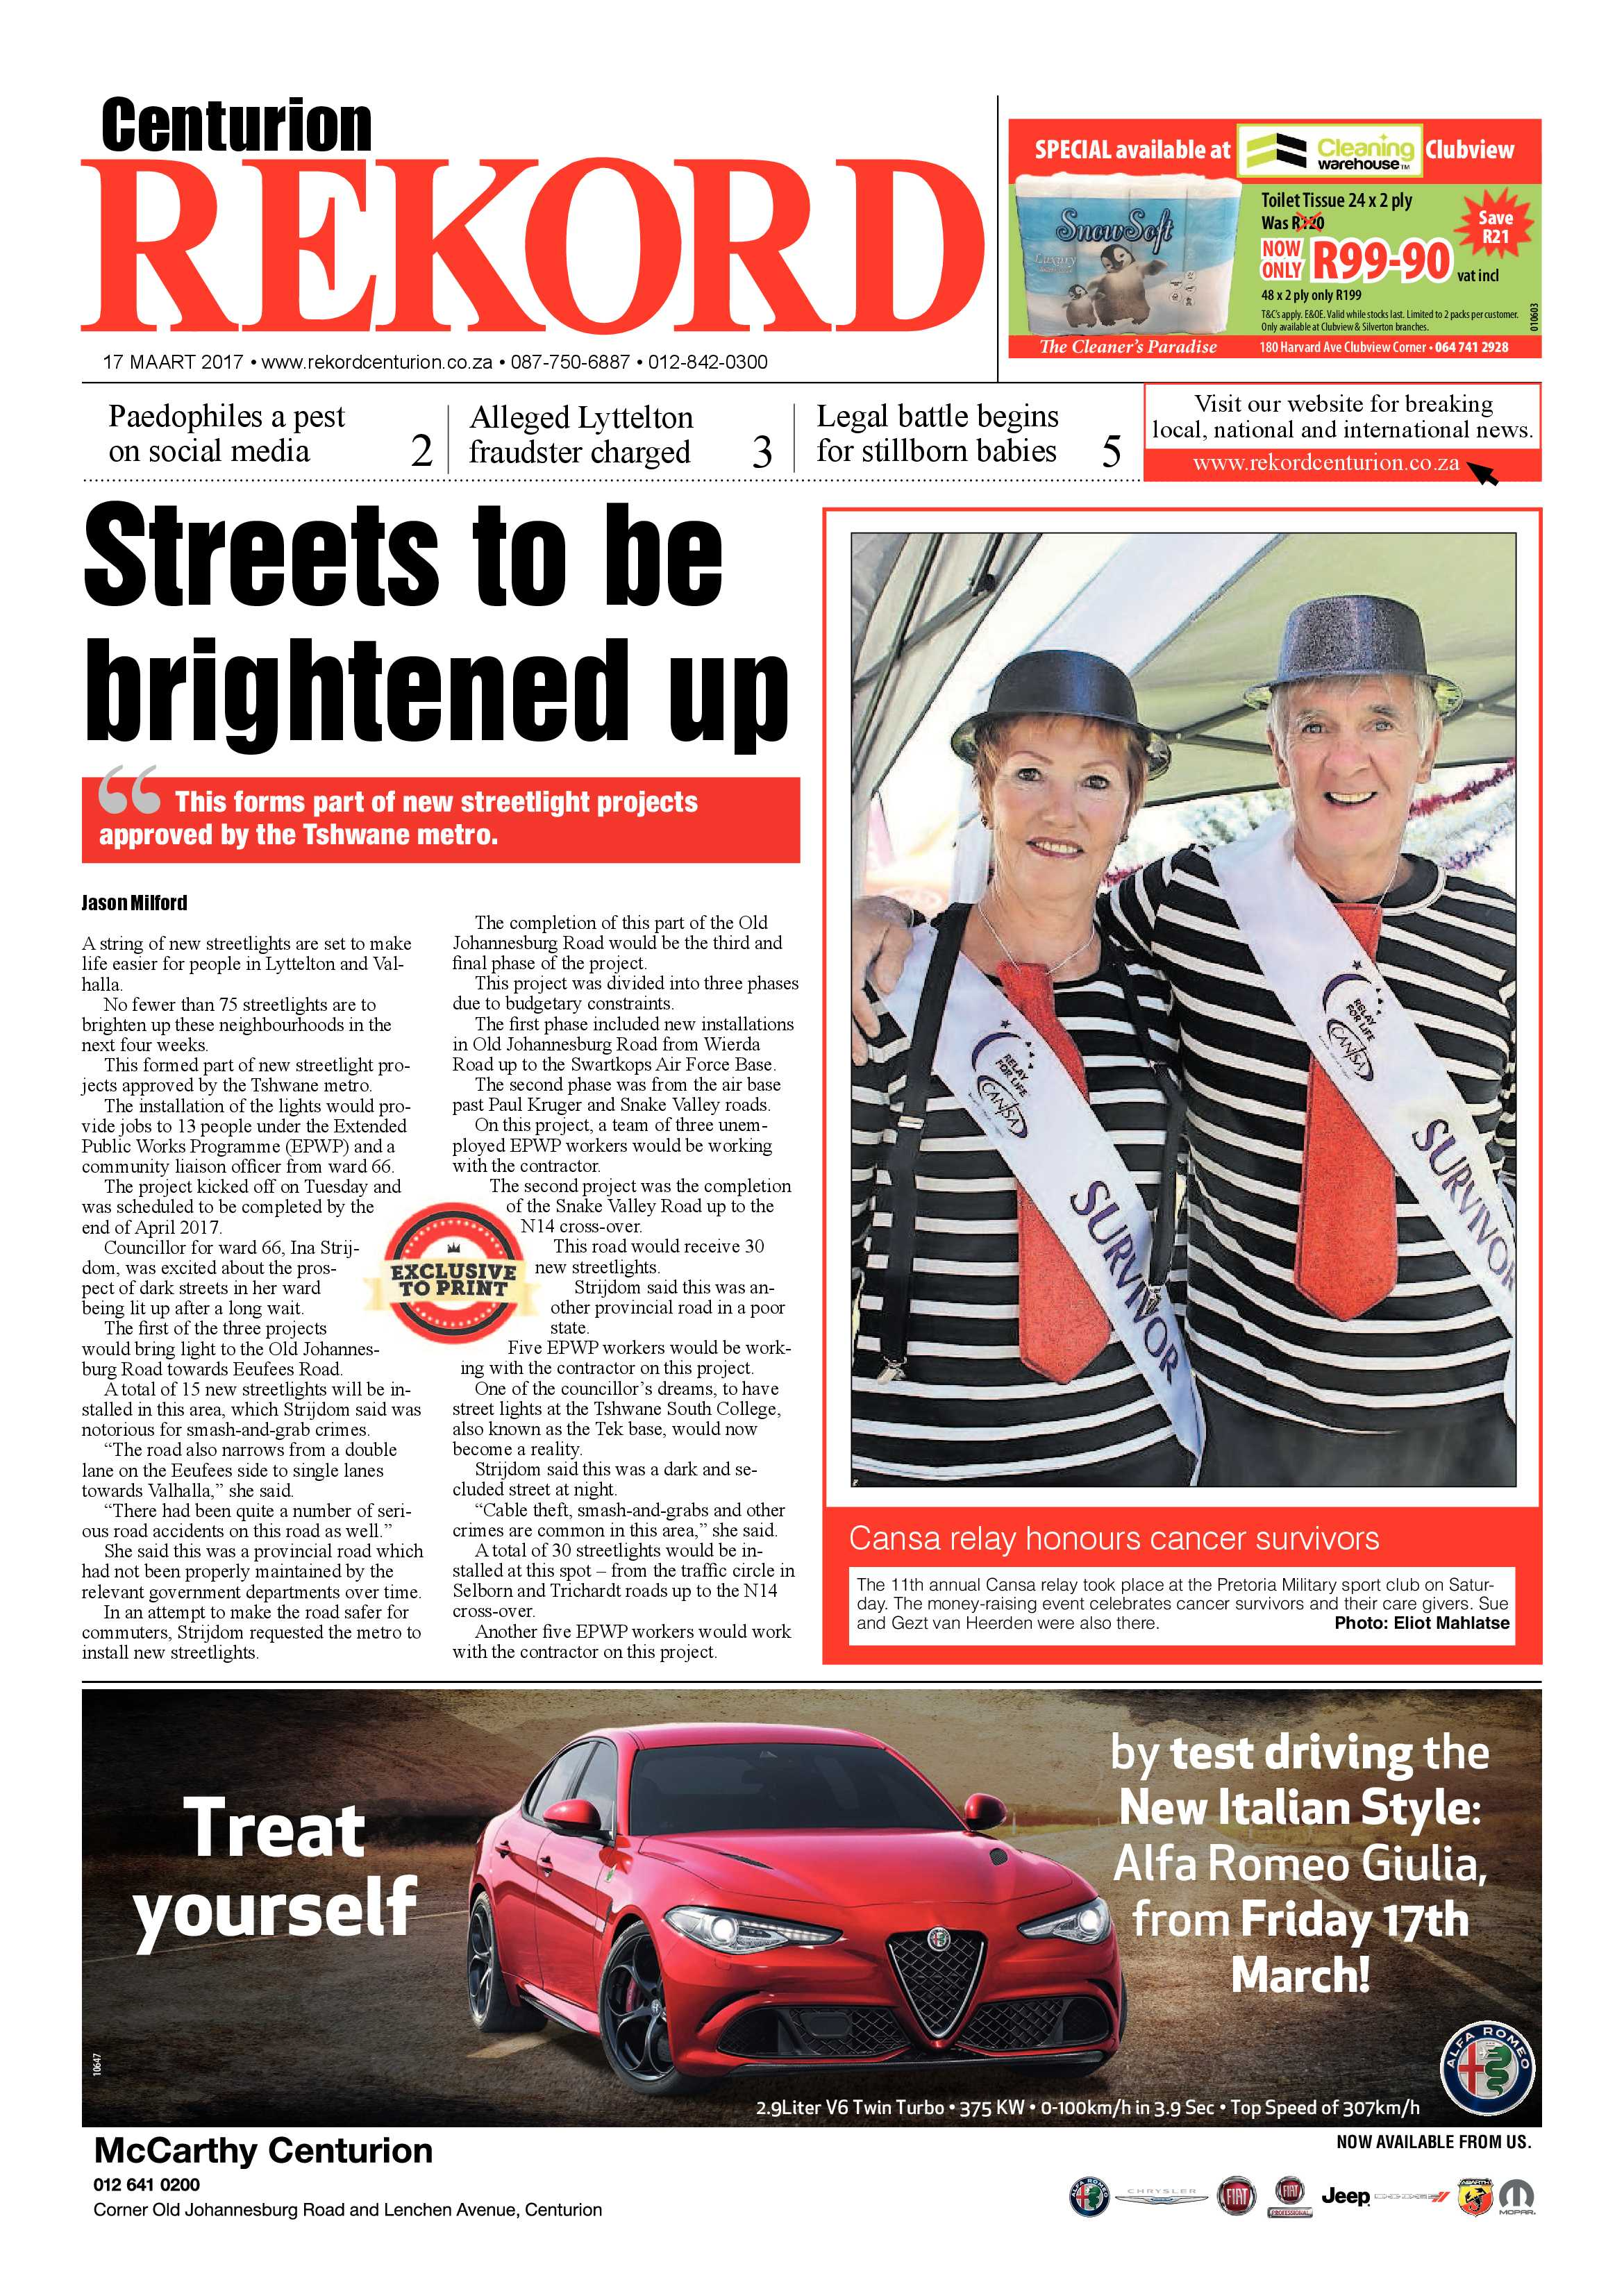 rekord-centurion-17-march-2017-epapers-page-1